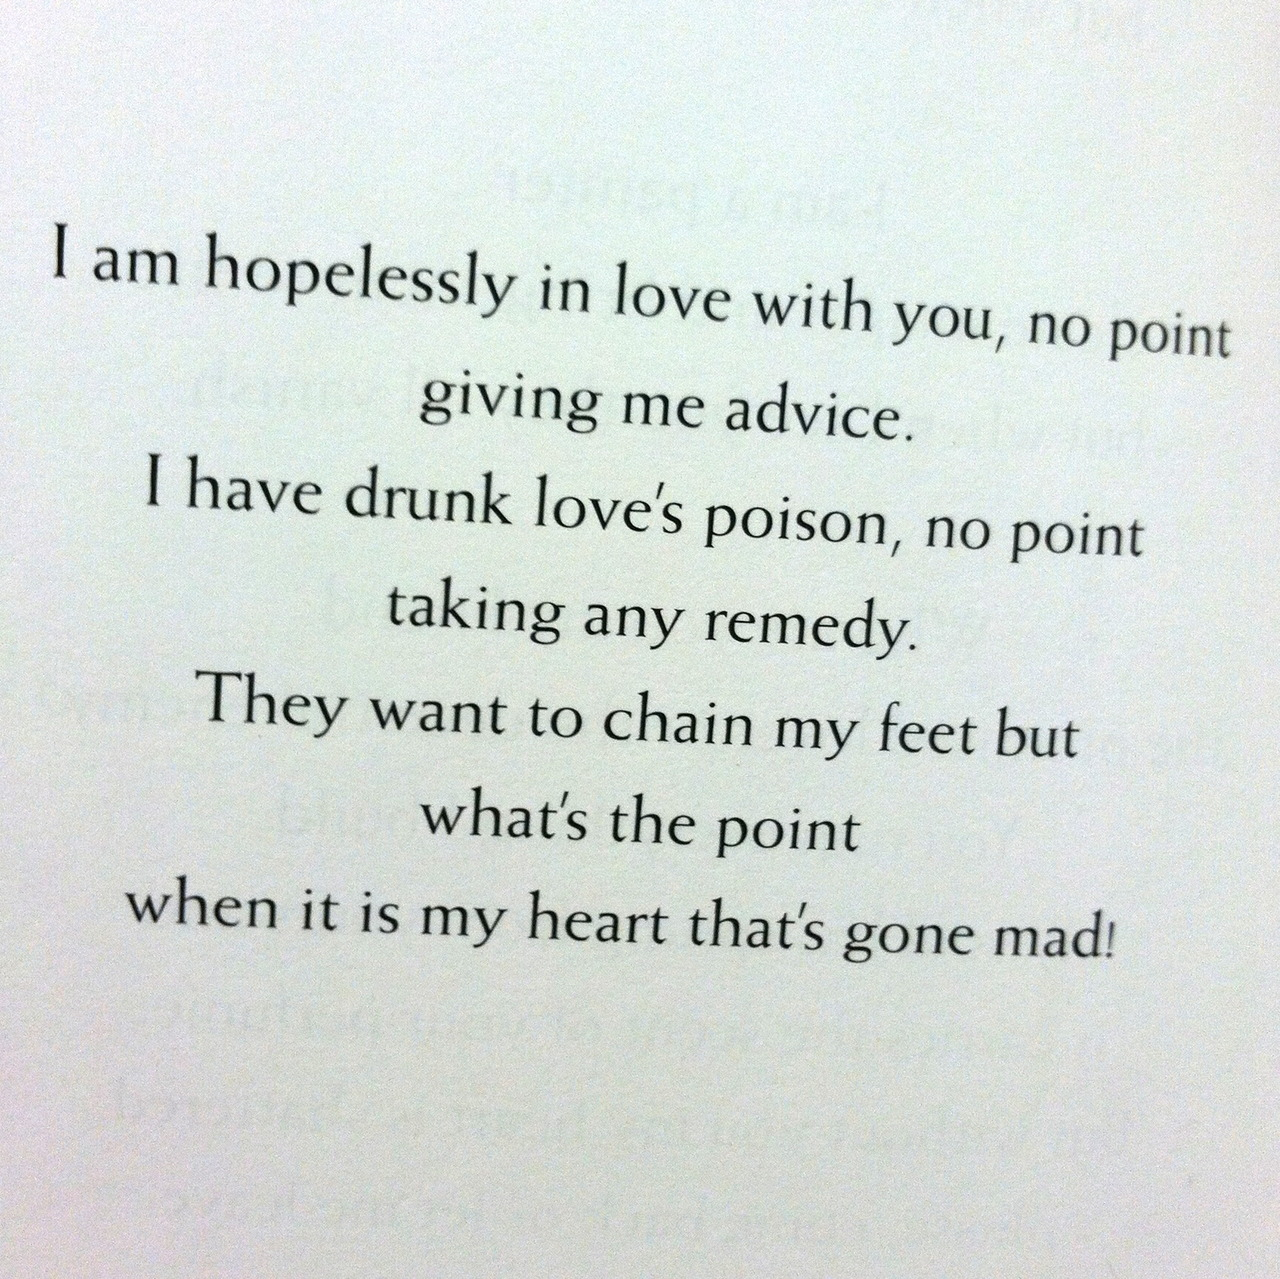 Love Poem Quotes For Him In Love With You Poems Poems